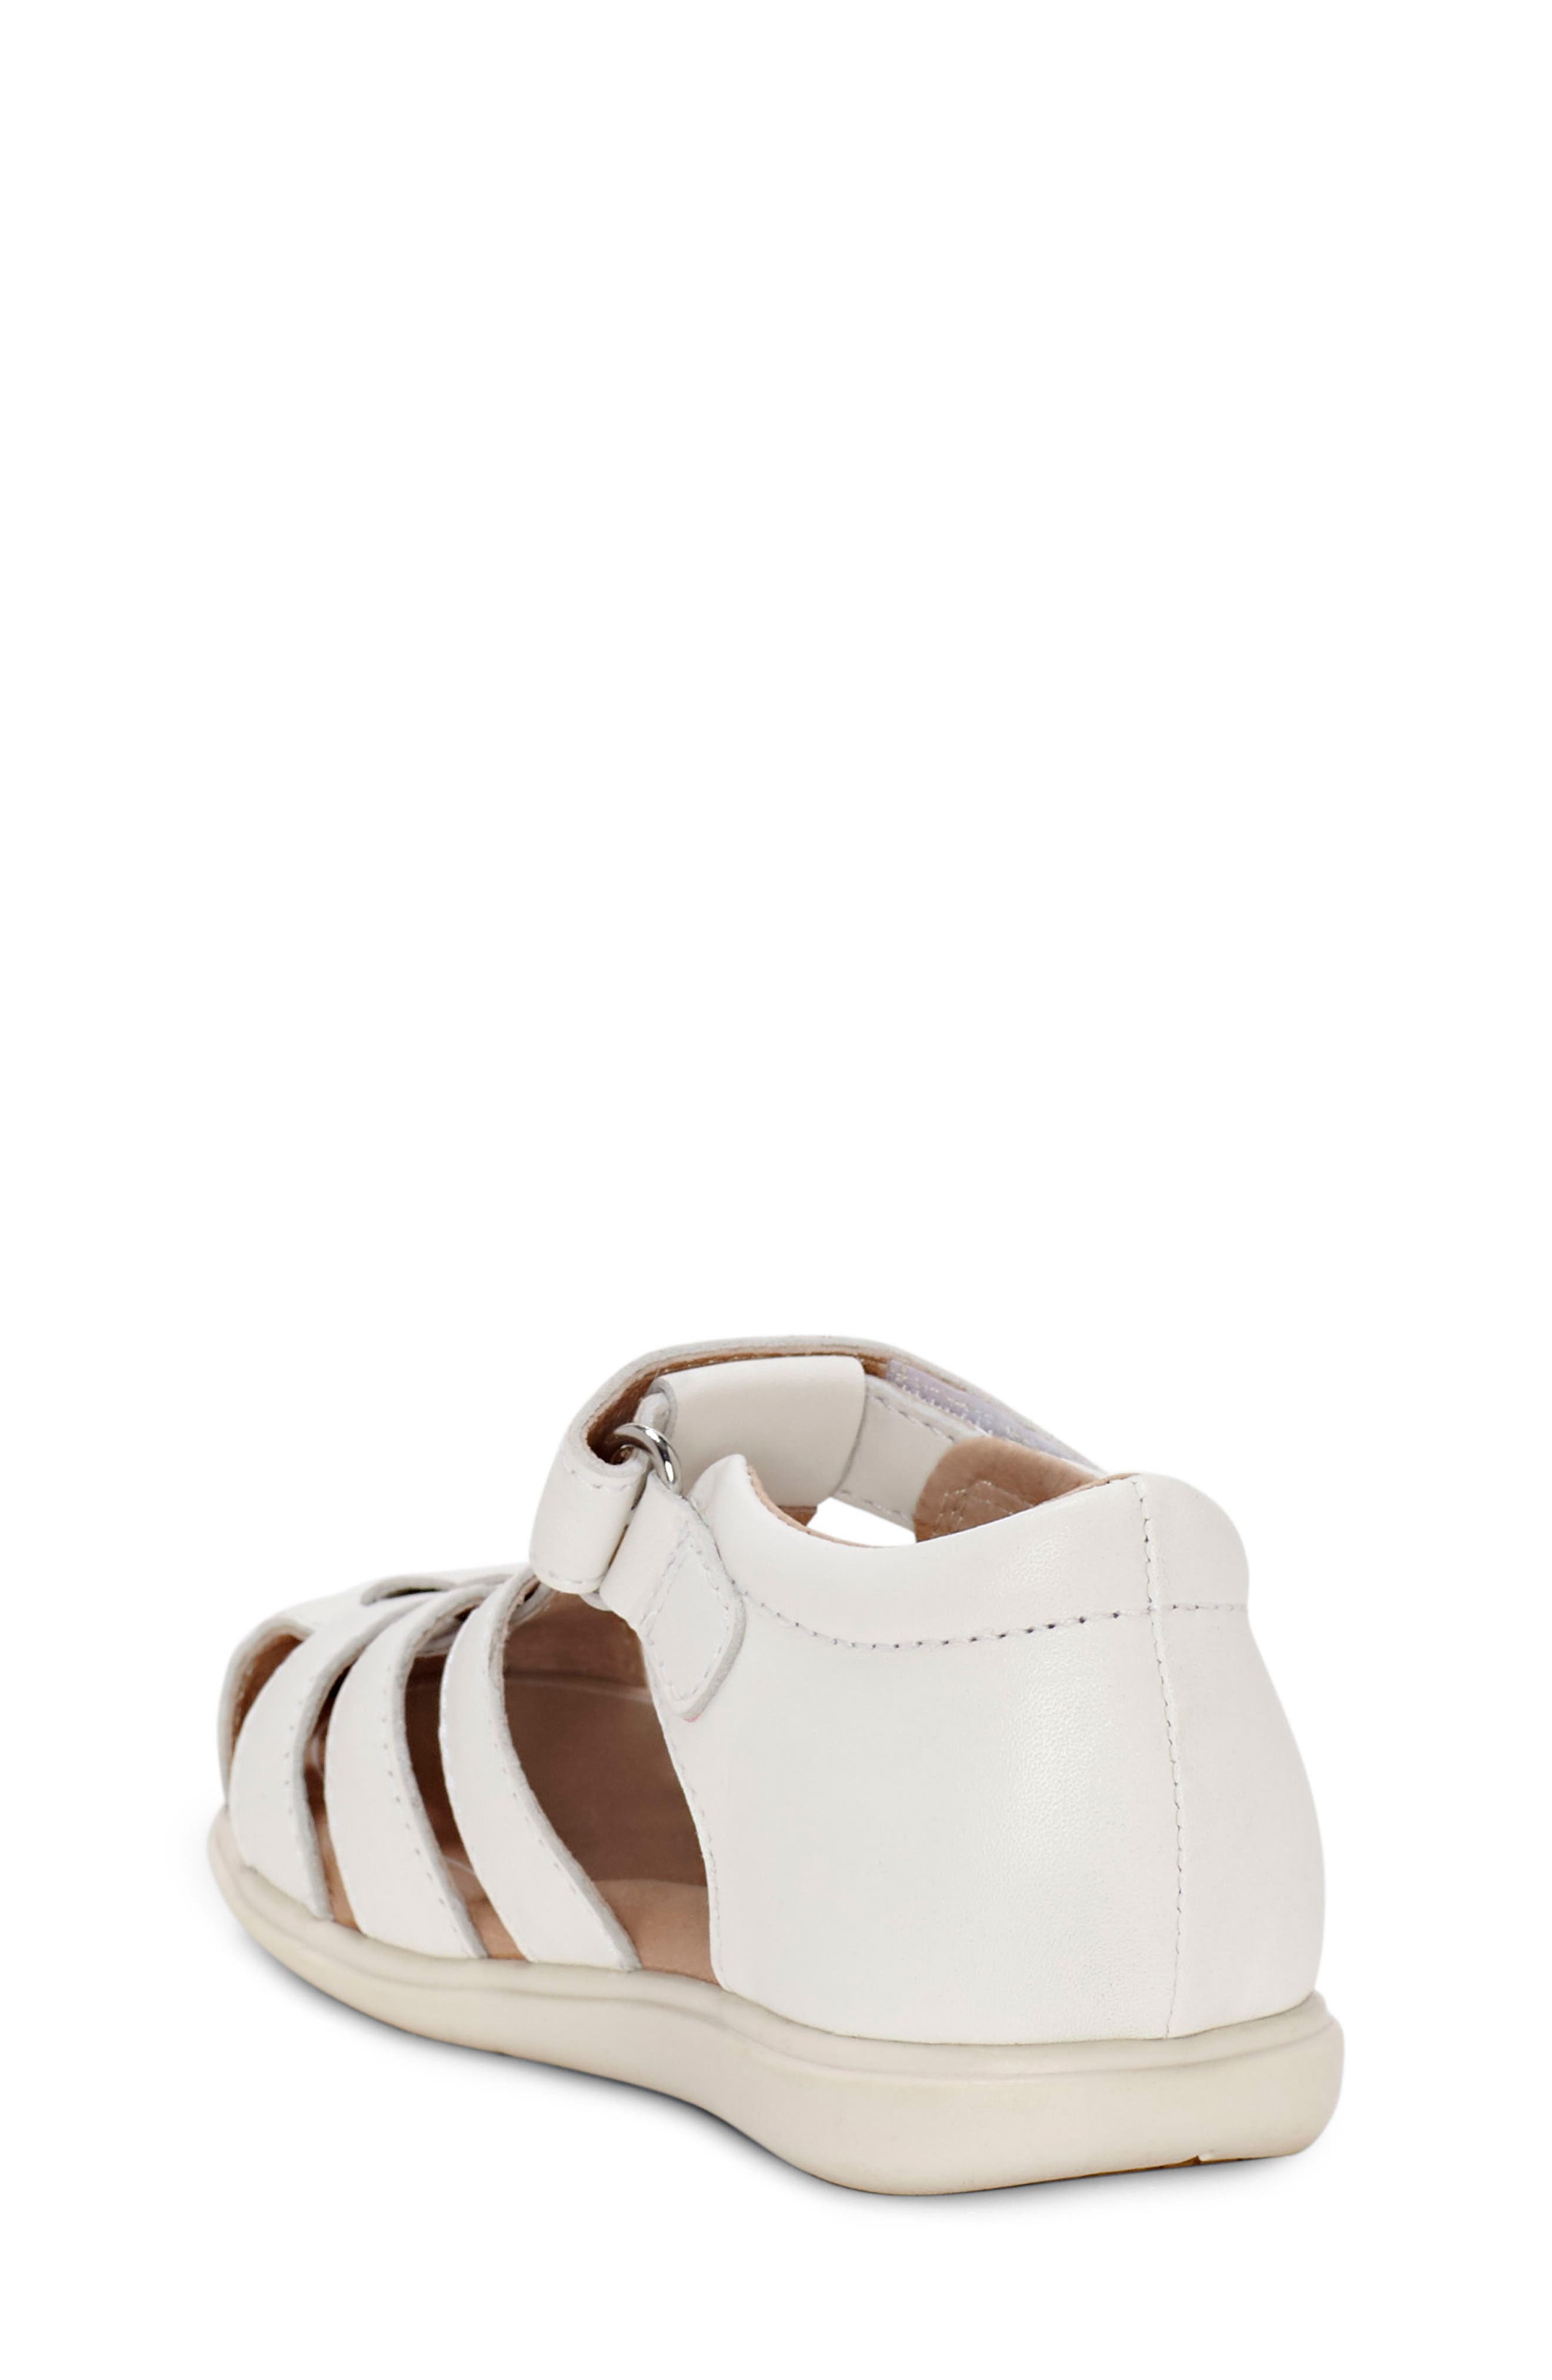 SOLE PLAY,                             Caleb Sandal,                             Alternate thumbnail 2, color,                             WHITE